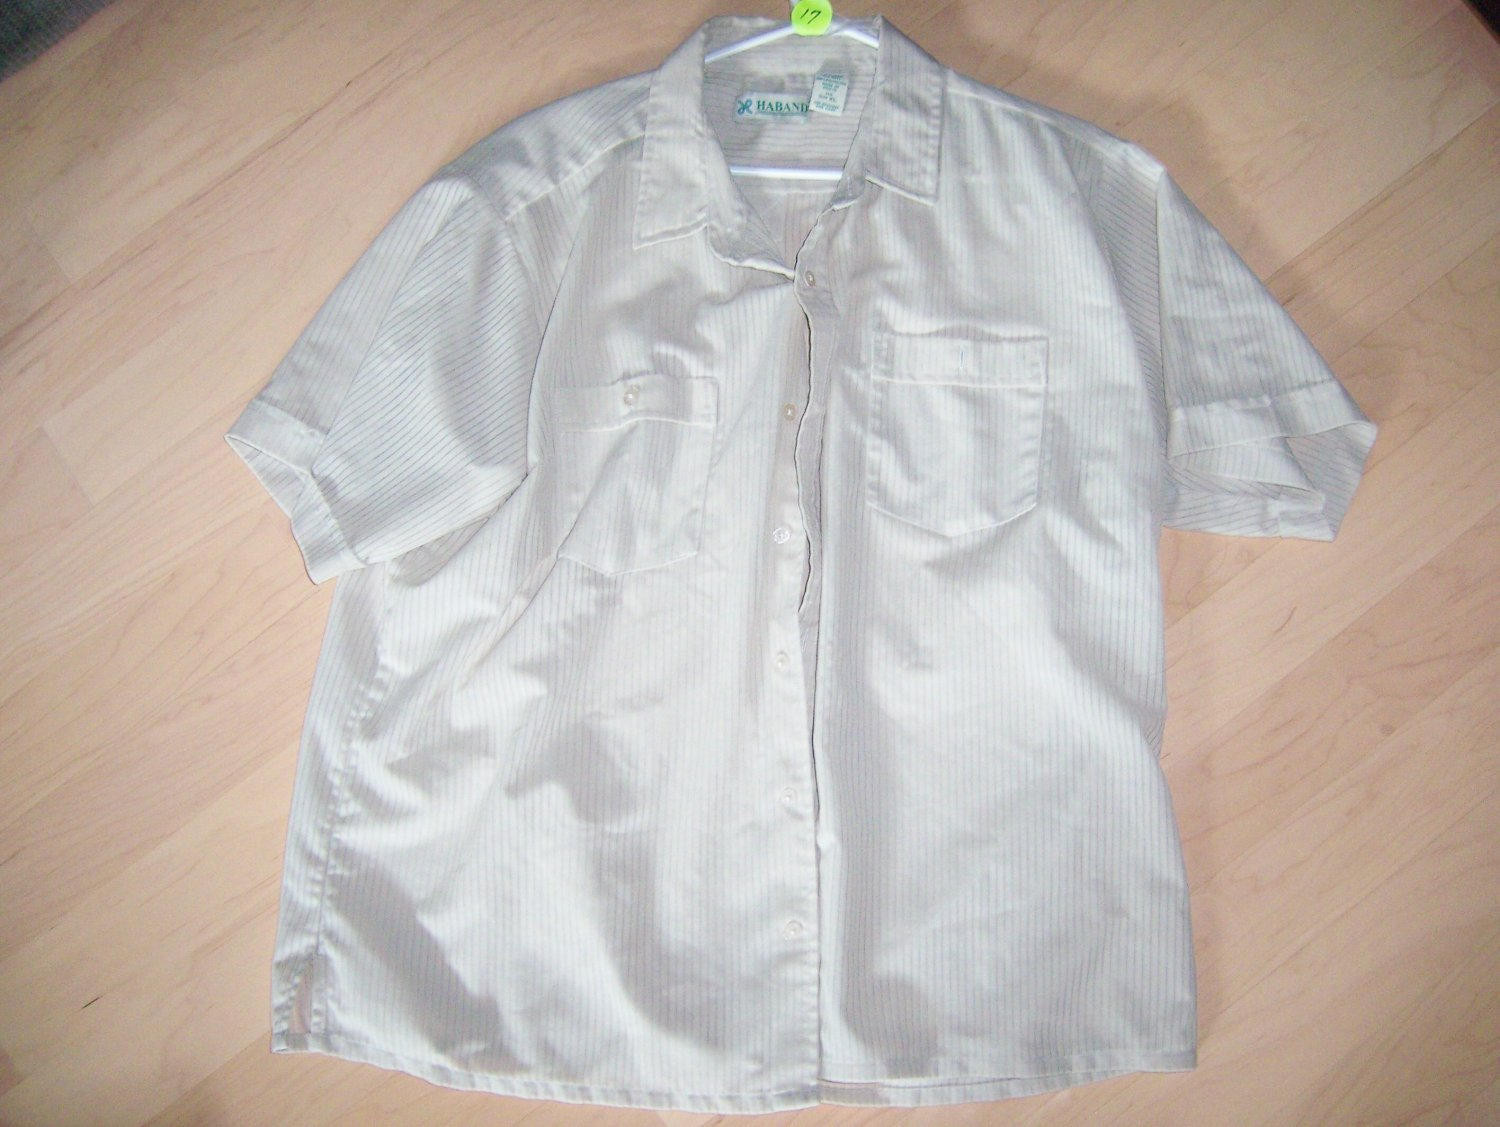 Men's Short Sleeve Shirt by Haband BNK601